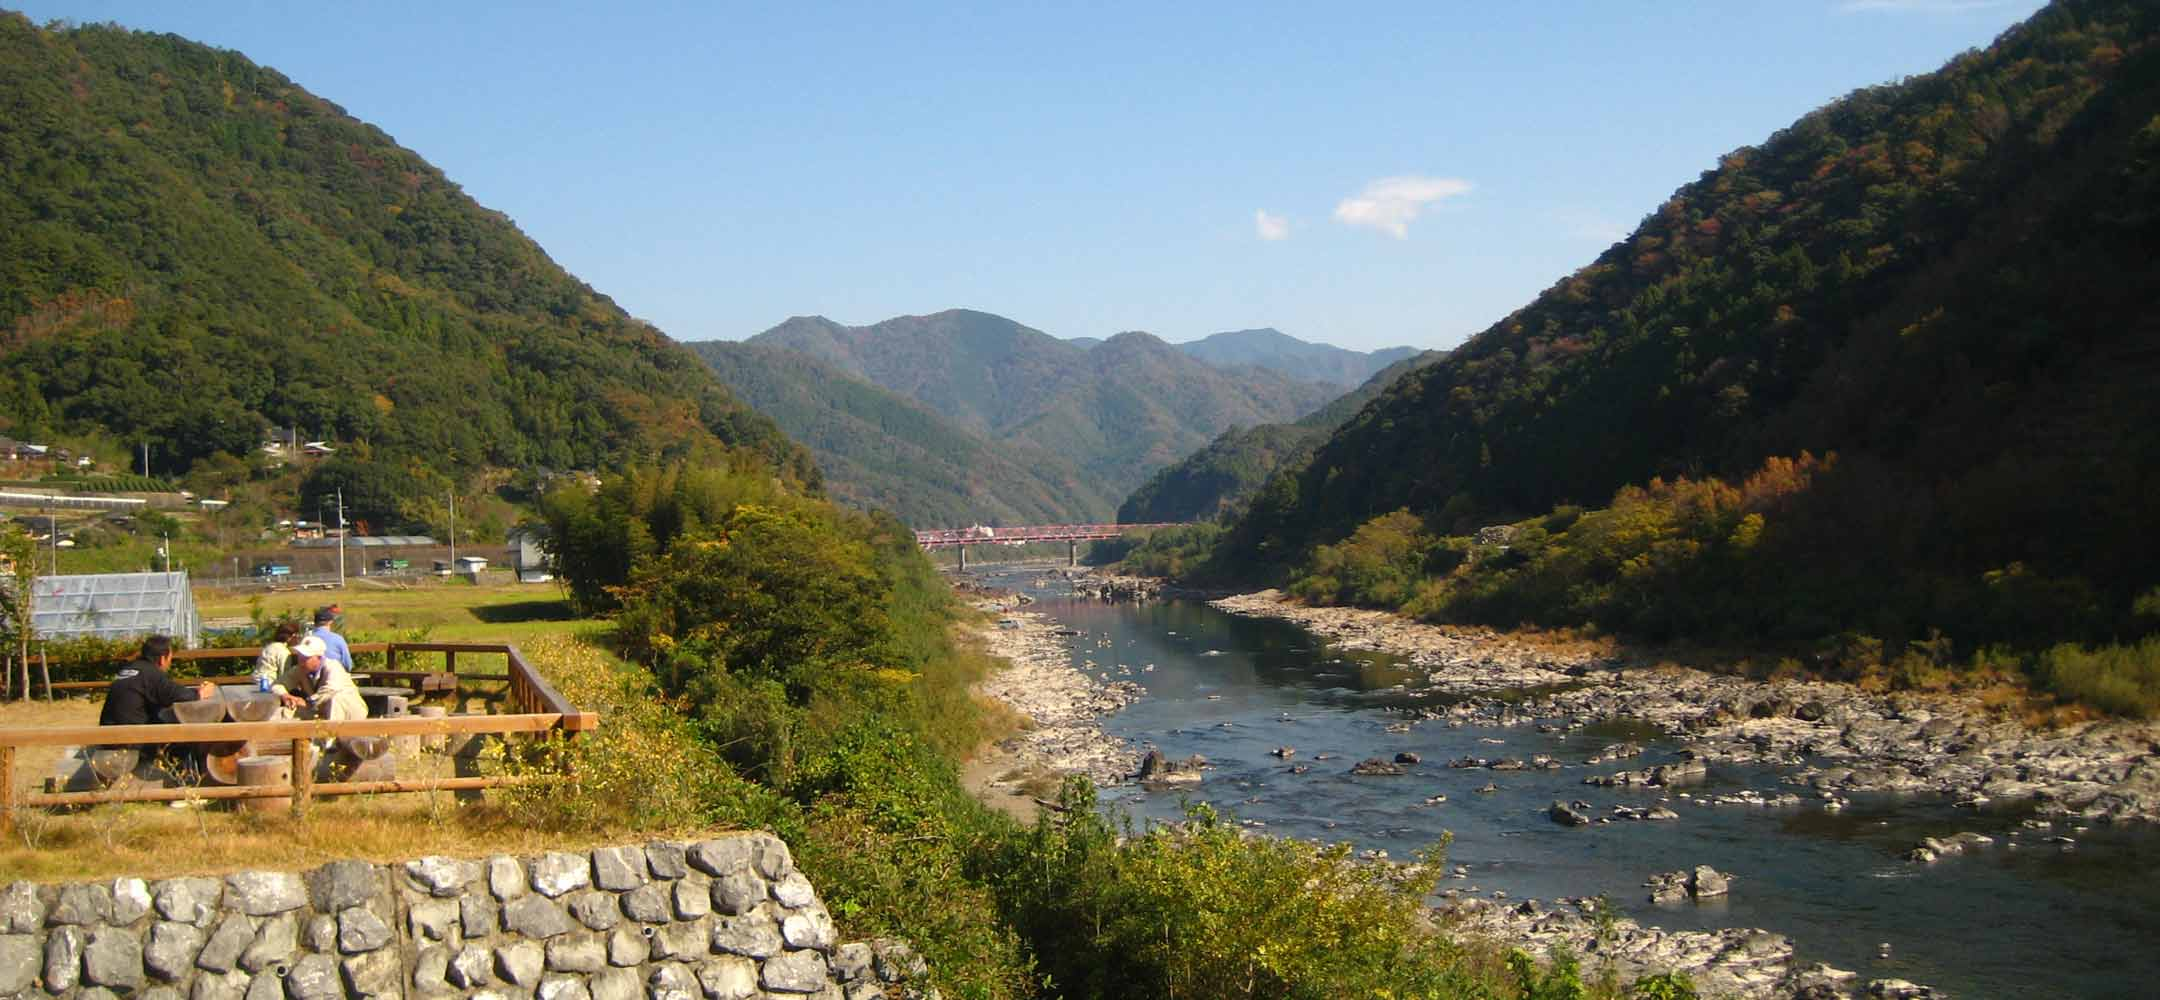 The Shimanto River